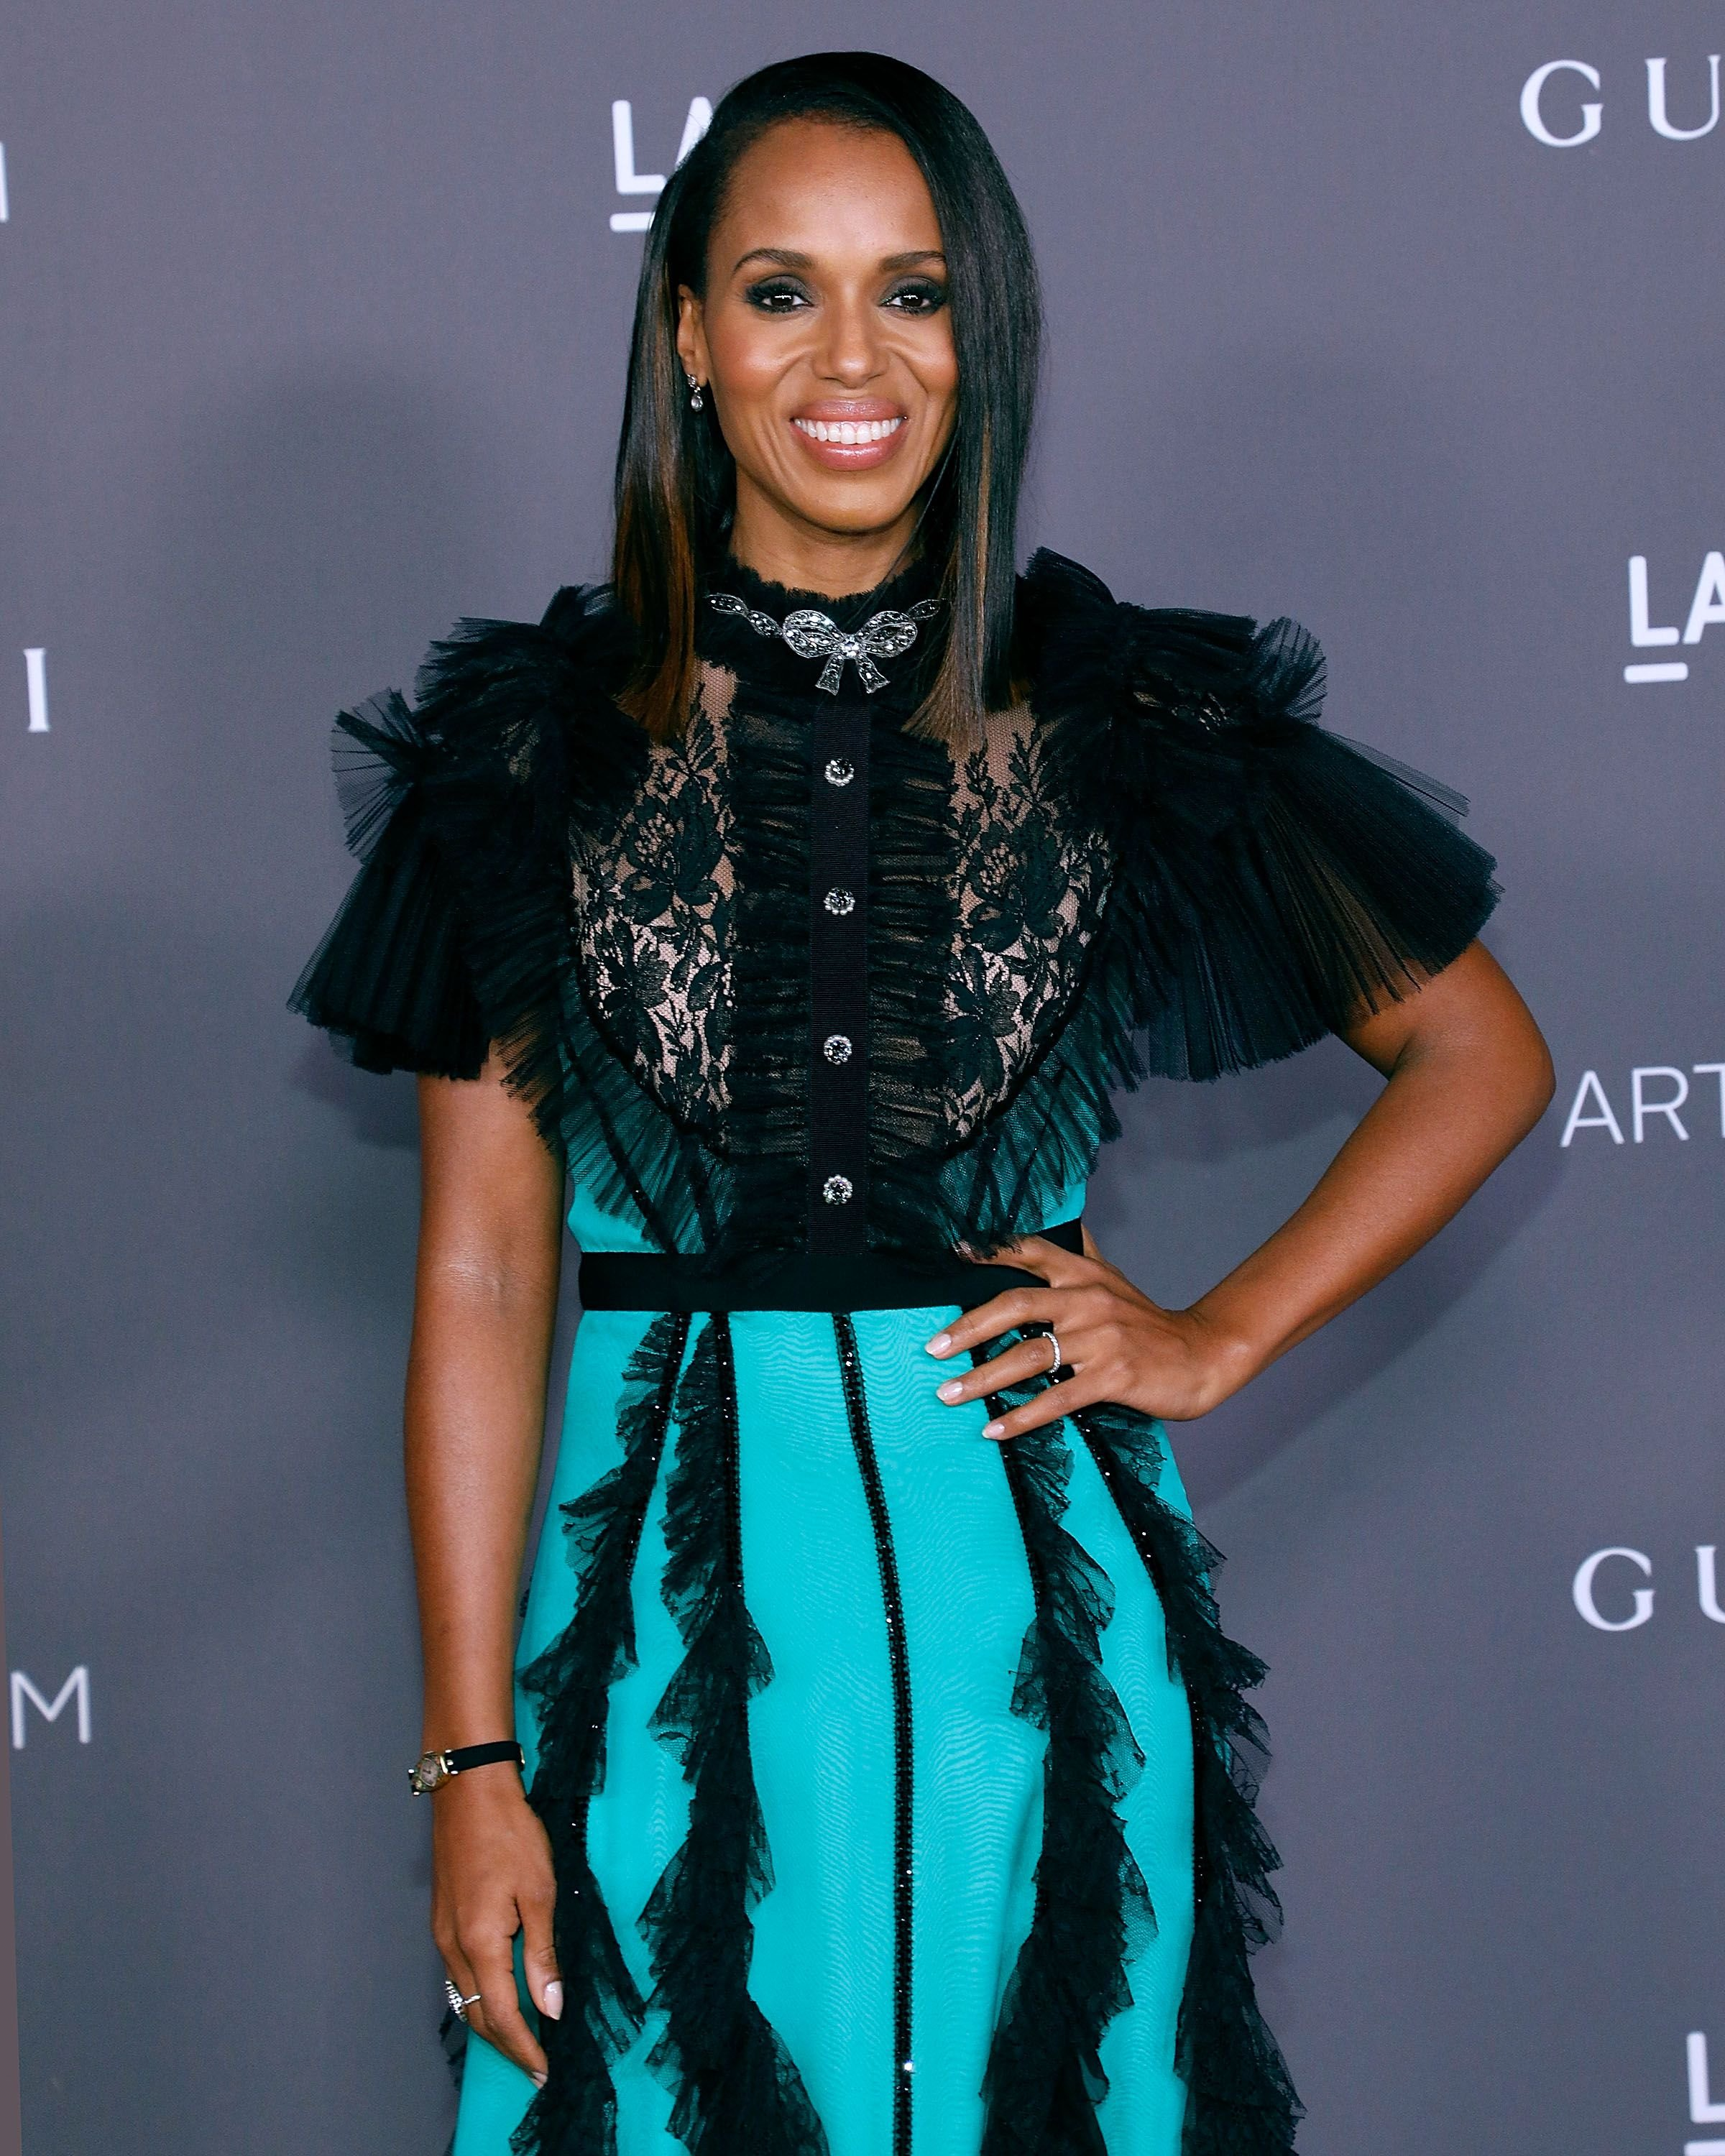 Kerry Washington at the 2017 Art + Film Gala at LACMA on November 4, 2017 in Los Angeles, California | Photo: Getty Images